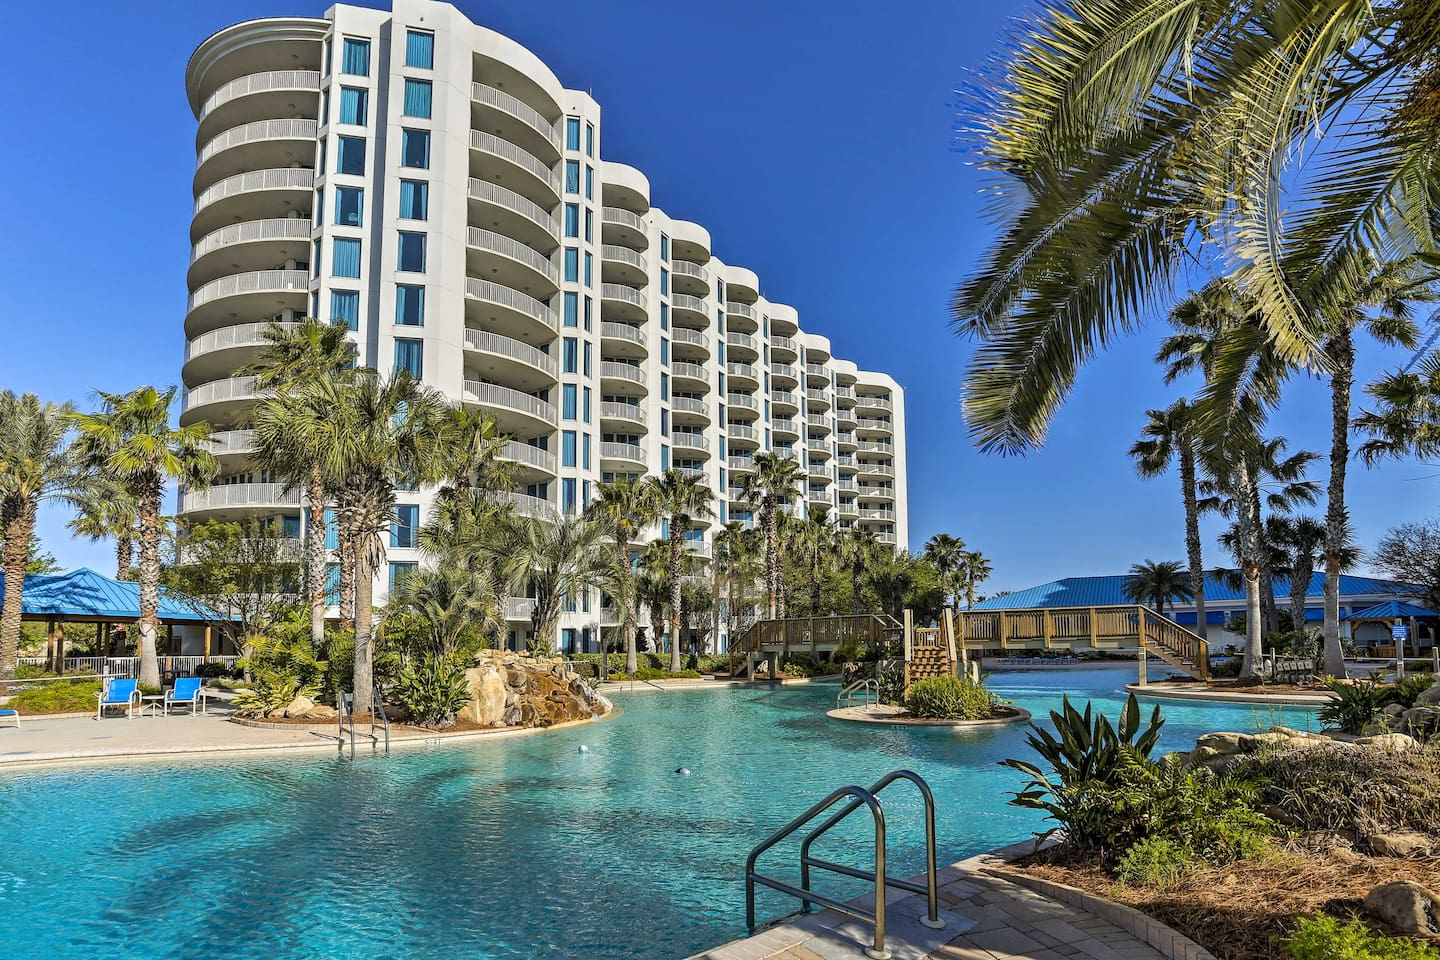 Unwind in beautiful Destin at this resort vacation rental condo.